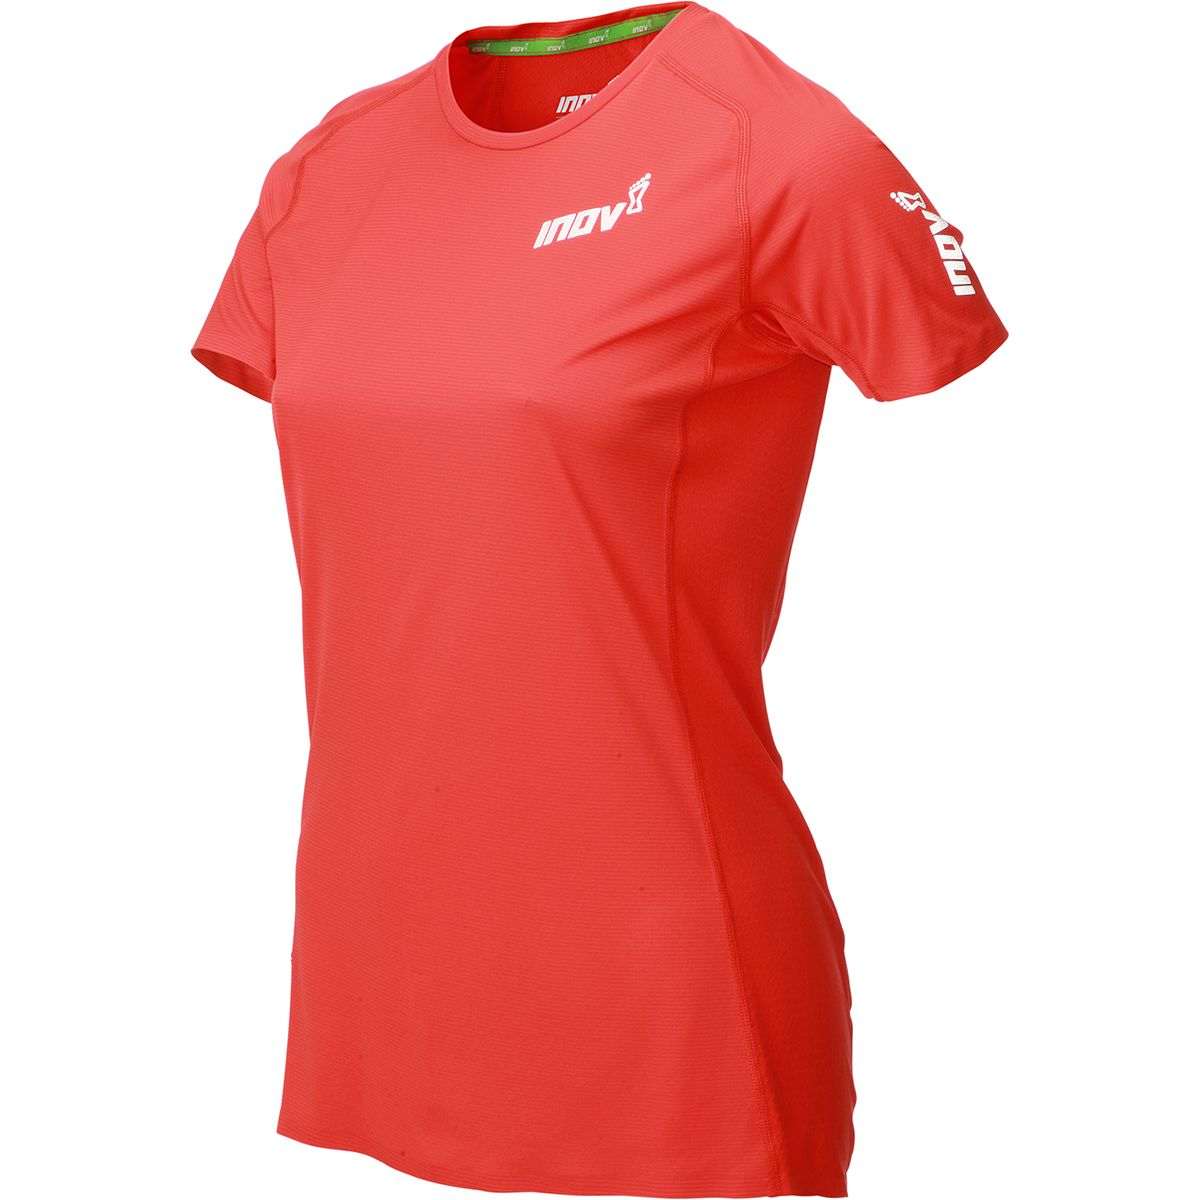 Inov-8 Damen Base Elite T-Shirt (Größe M, Rot) | T-Shirts Funktion > Damen